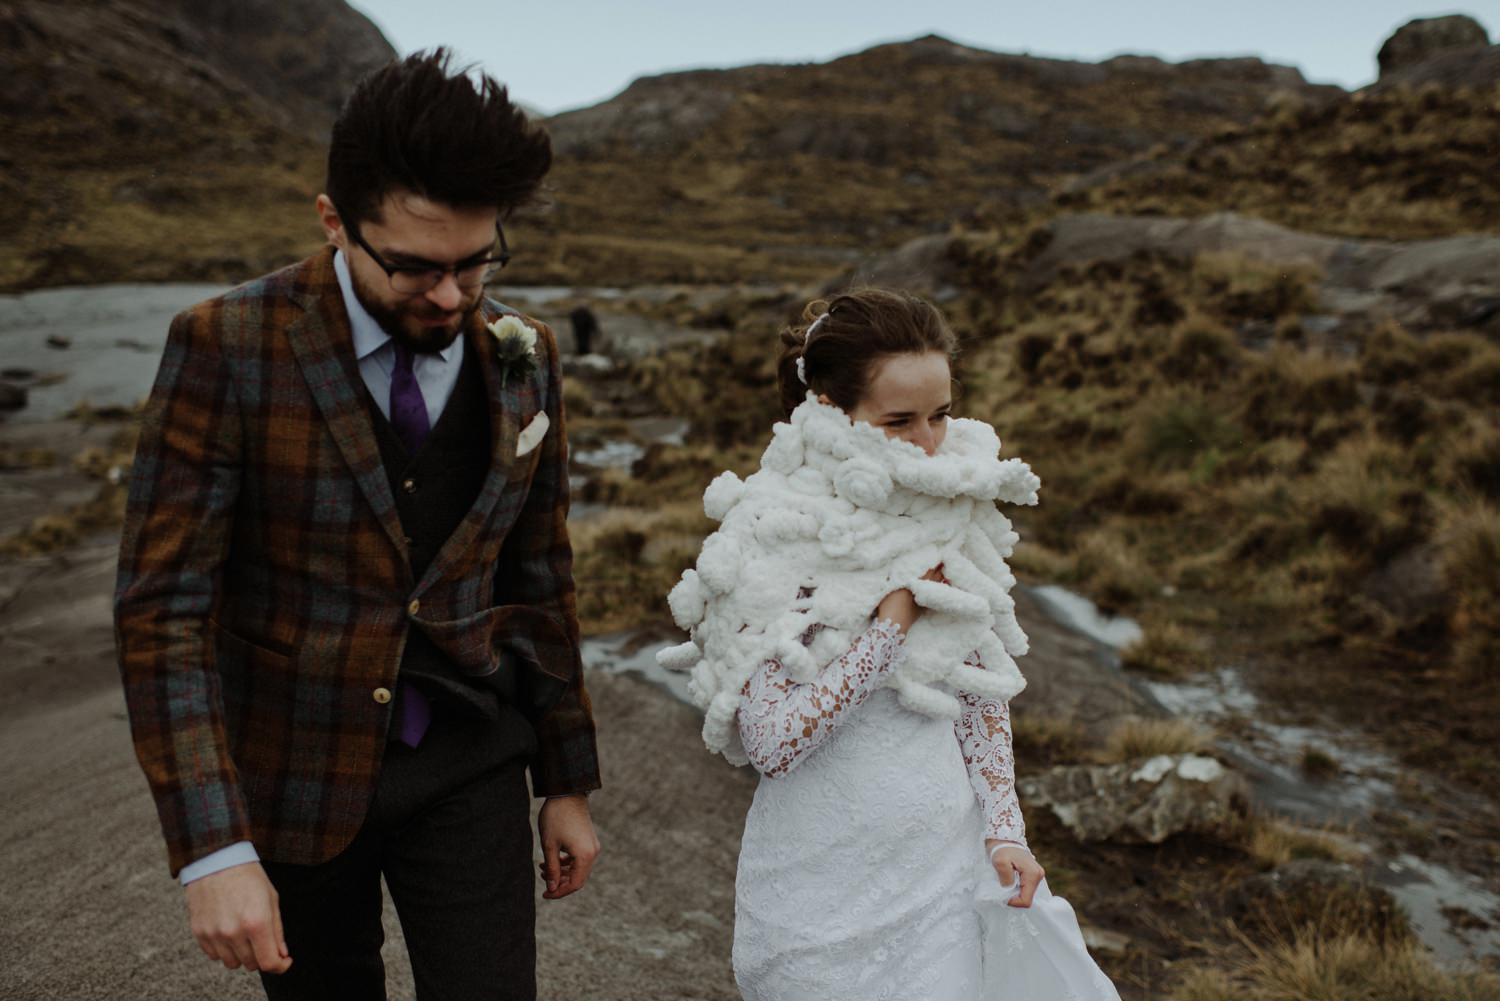 lsle of Skye elopement photographer_0419